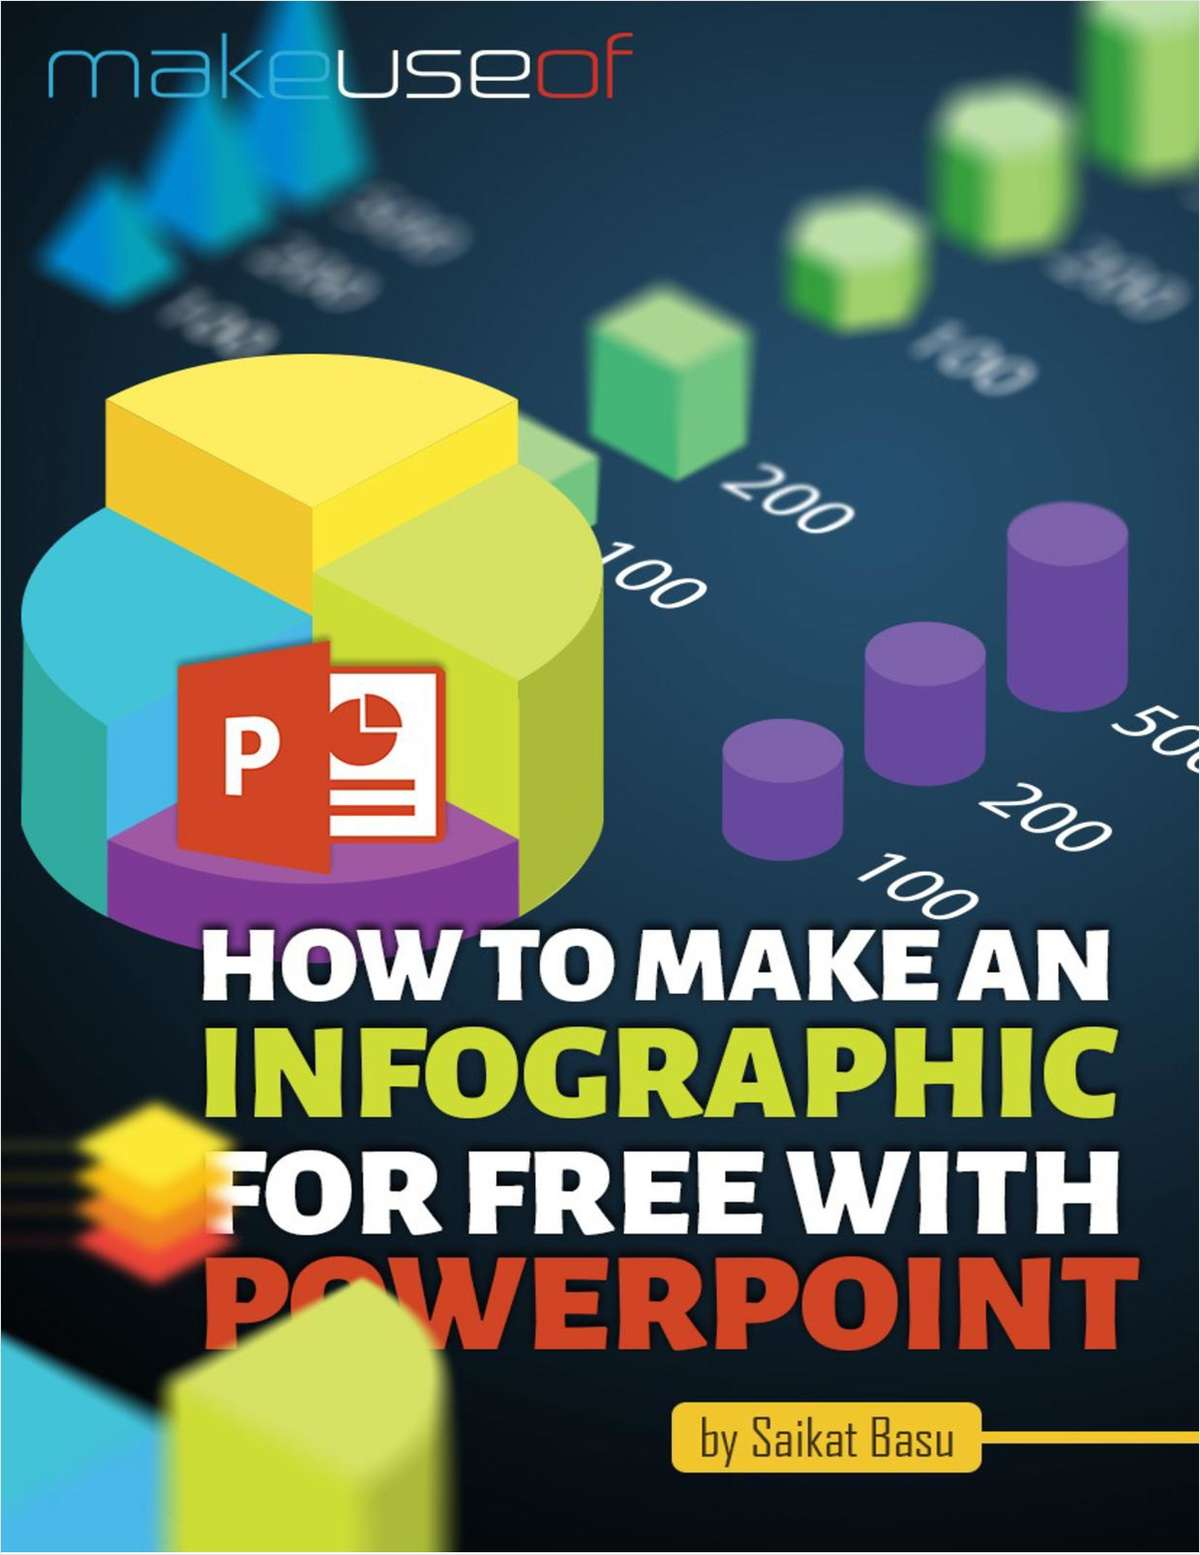 Make infographic for free